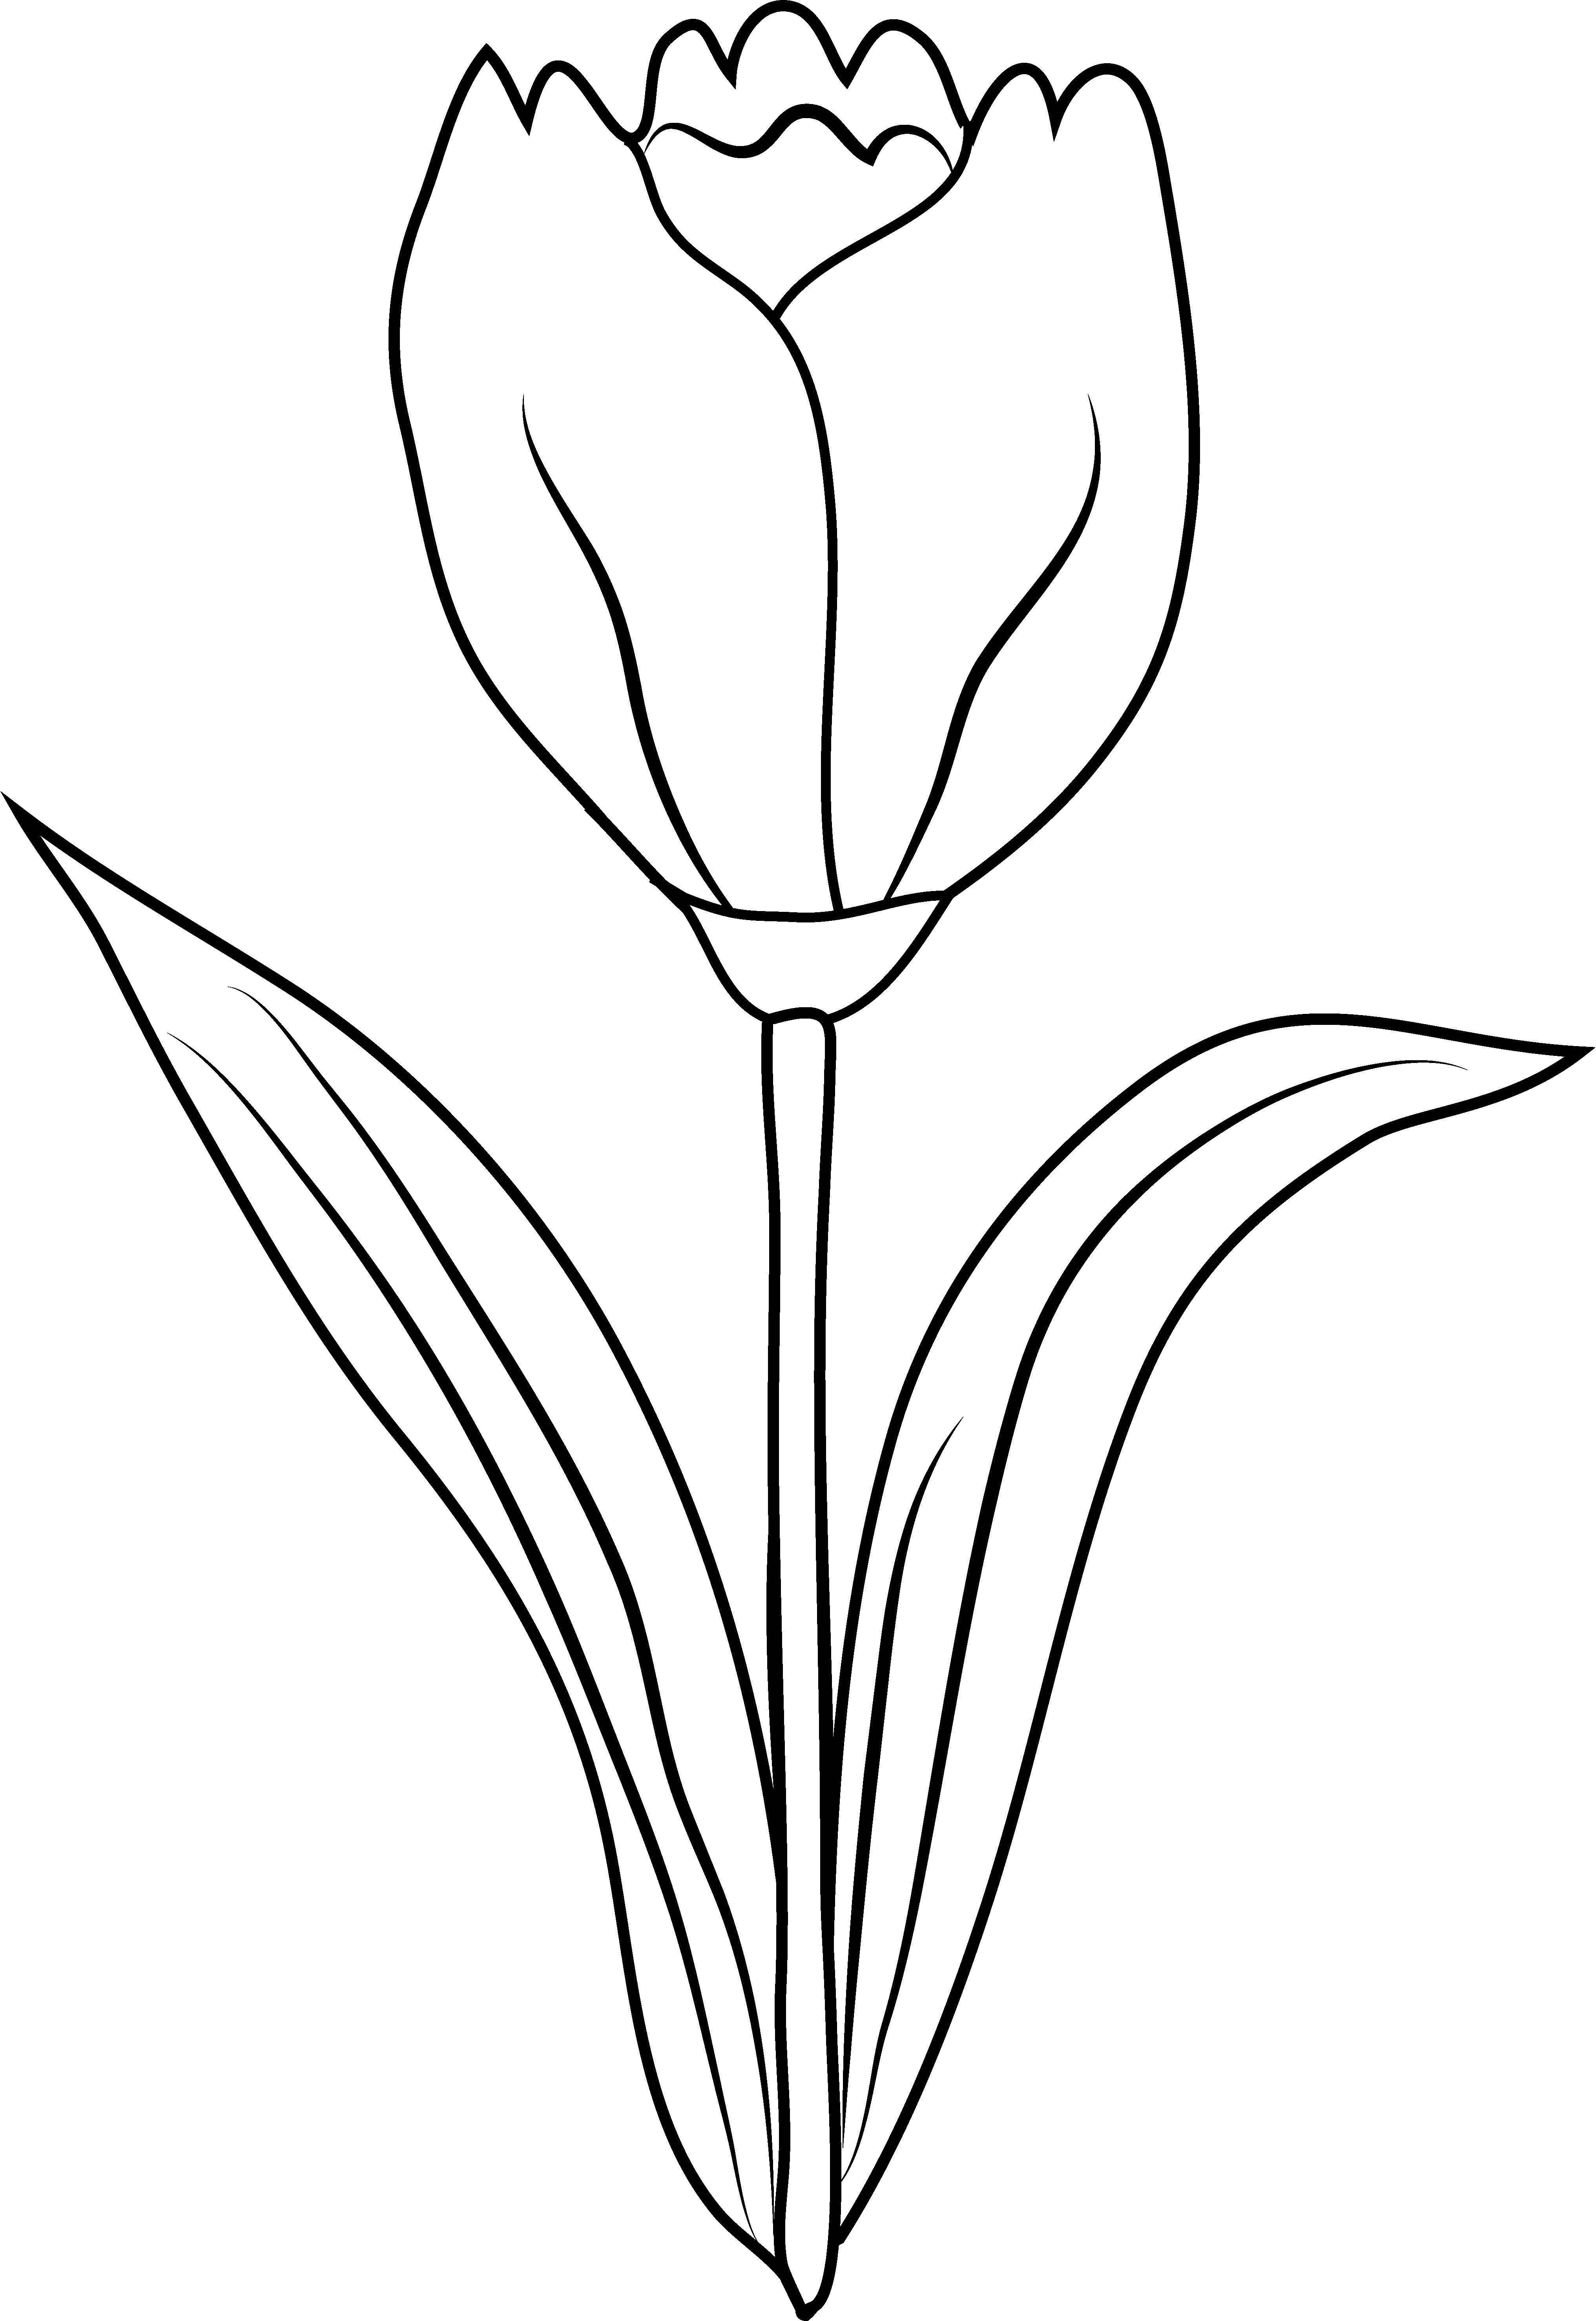 Tulip flower coloring page. Sunset clipart outline